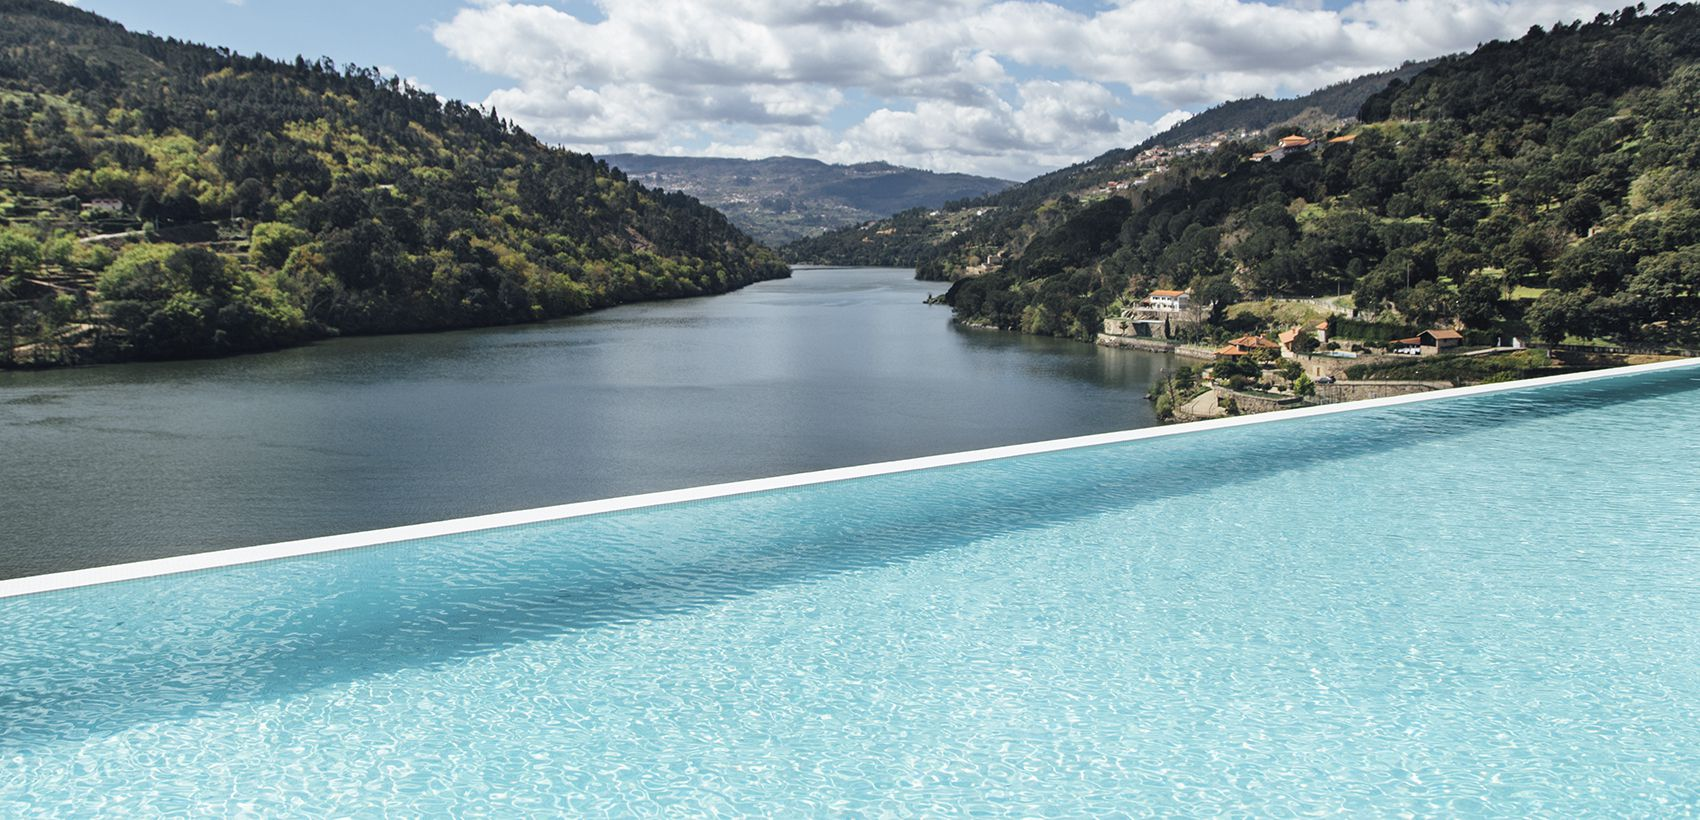 Réveillon D'Ouro: Douro Royal Valley Hotel & Spa